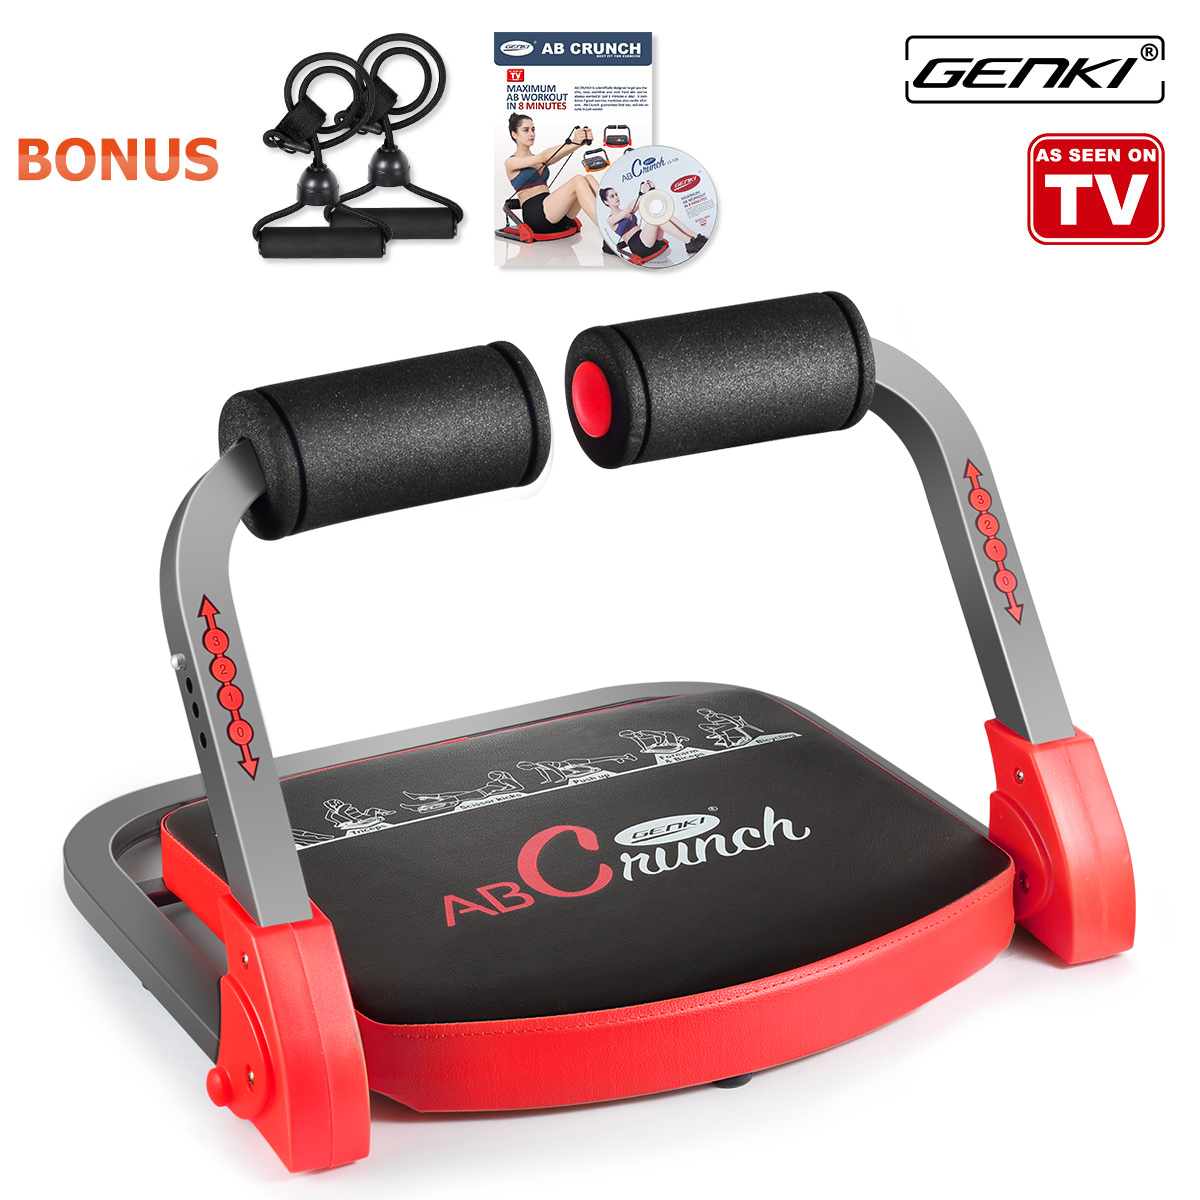 Genki ABS Machine Pro Core Exercise AB Abdominal Workout Fitness Equipment with Guide DVD, bands, poster, 9 IN 1, 3... by Genki